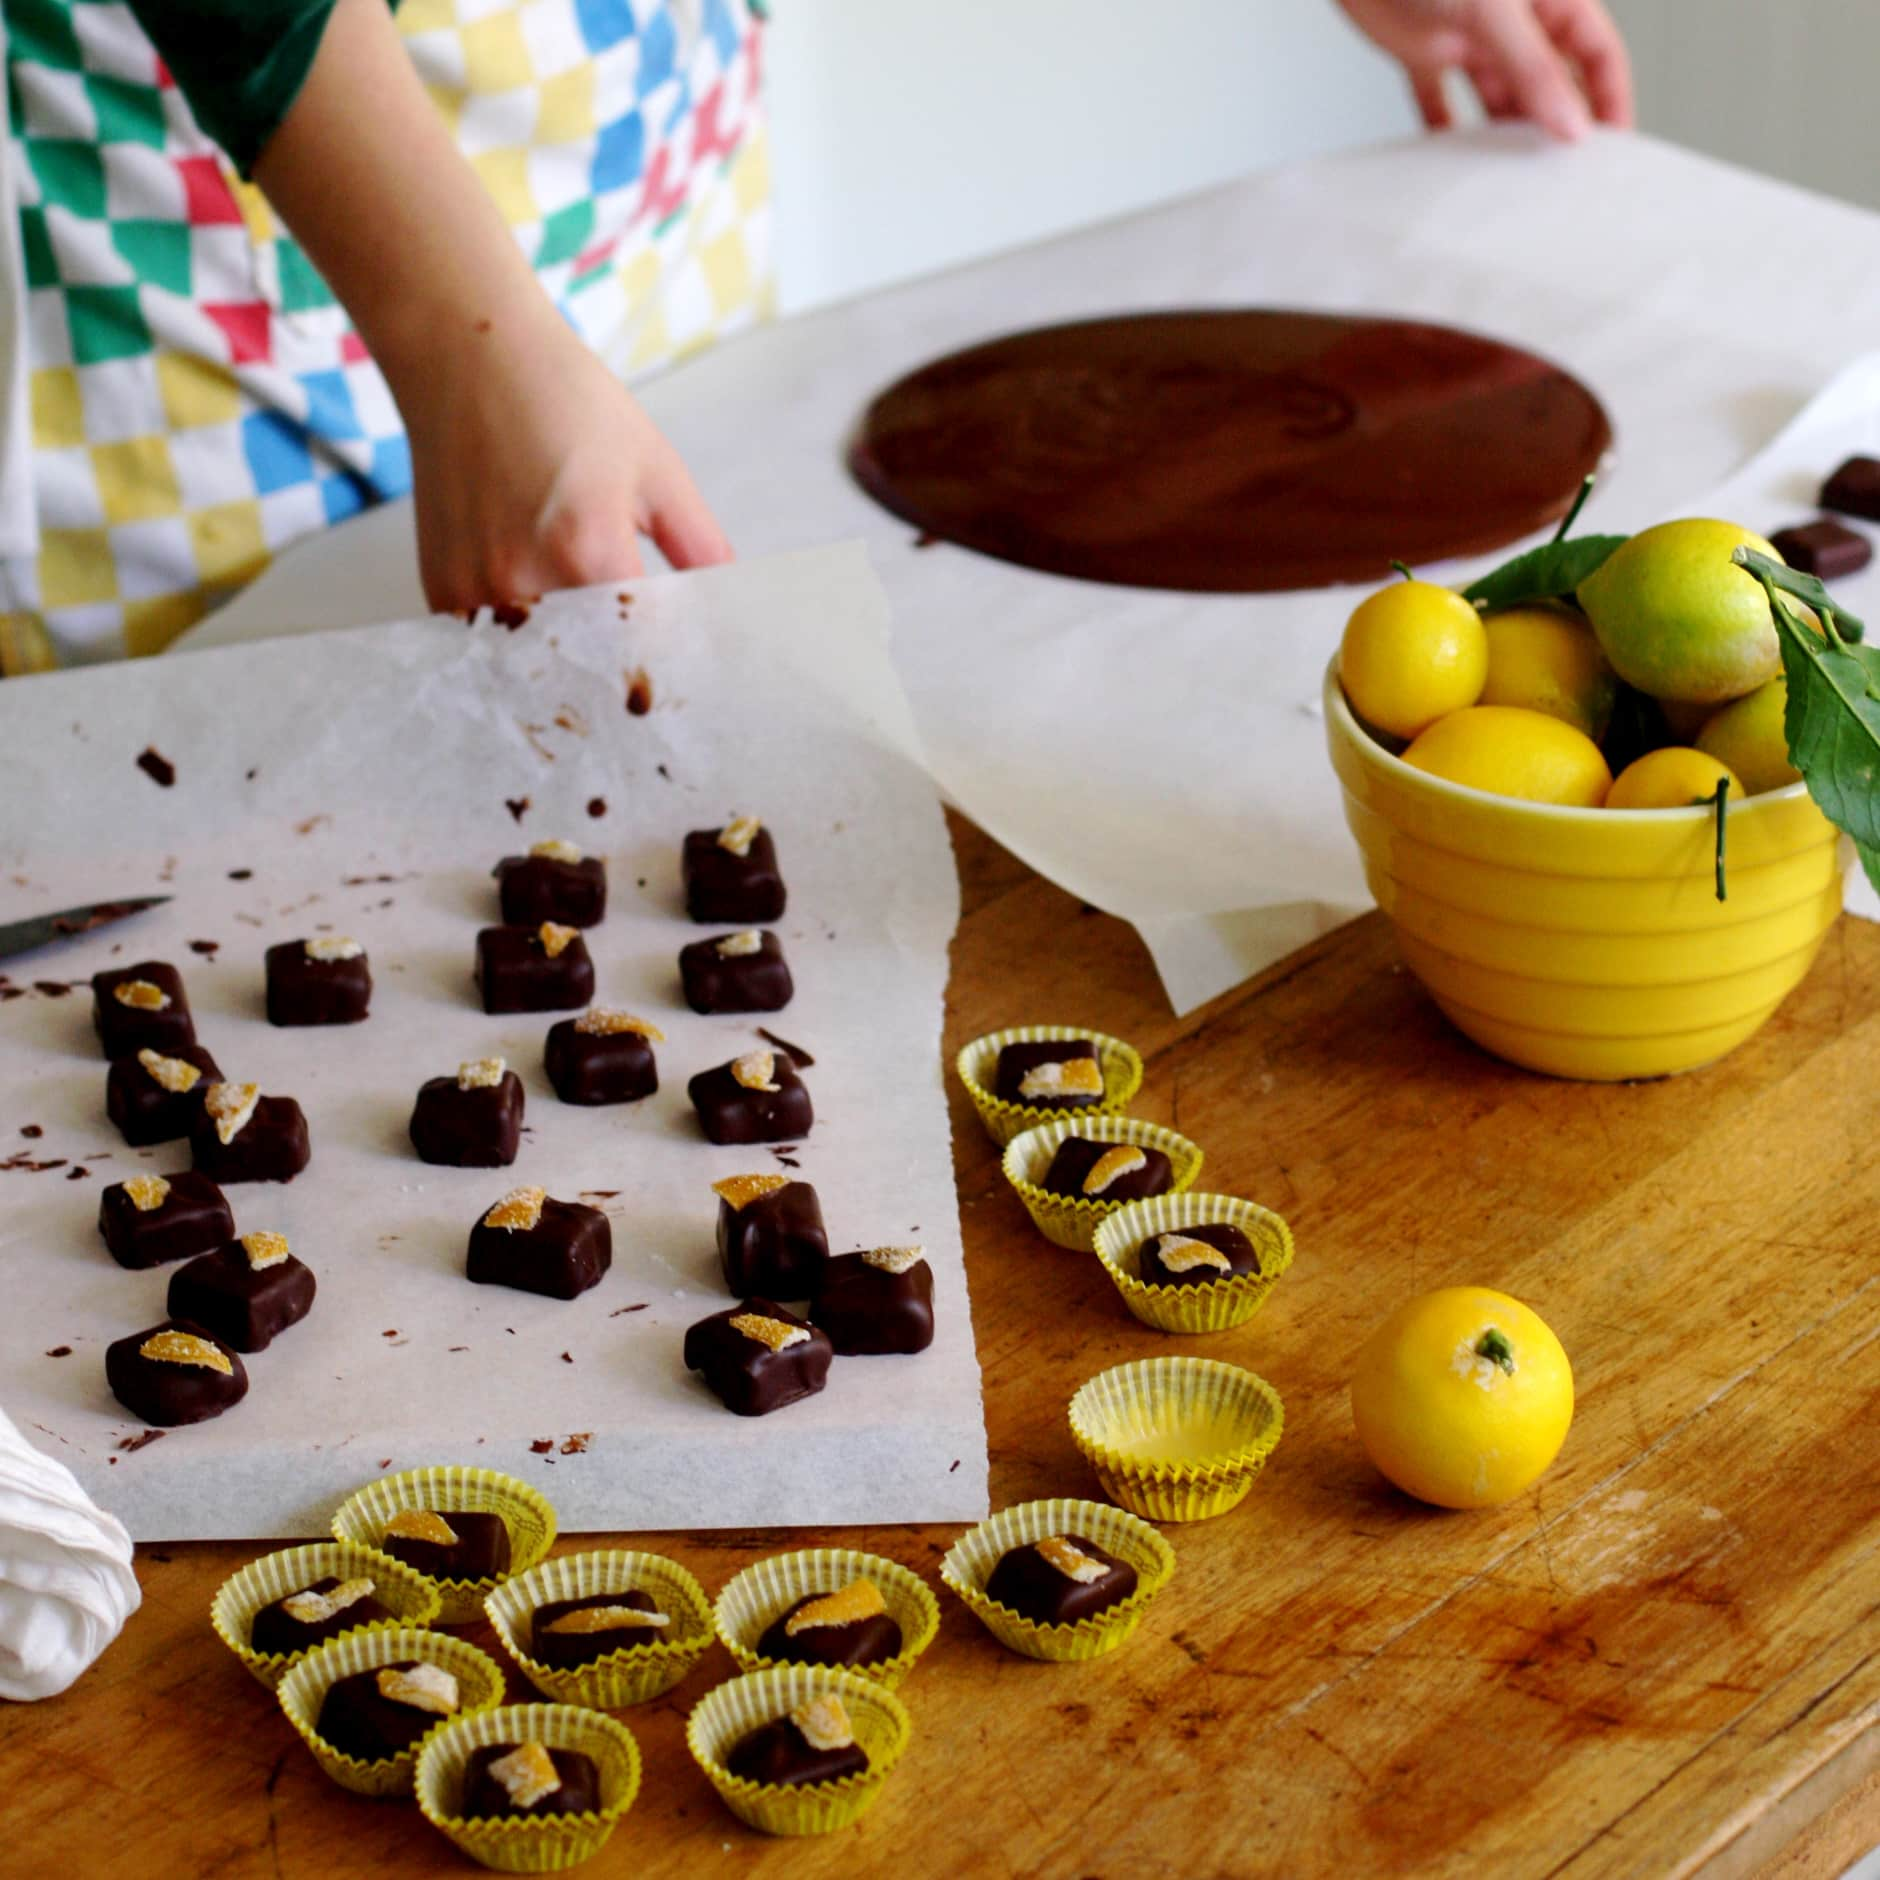 How To Make Hand-Dipped Chocolates: gallery image 18